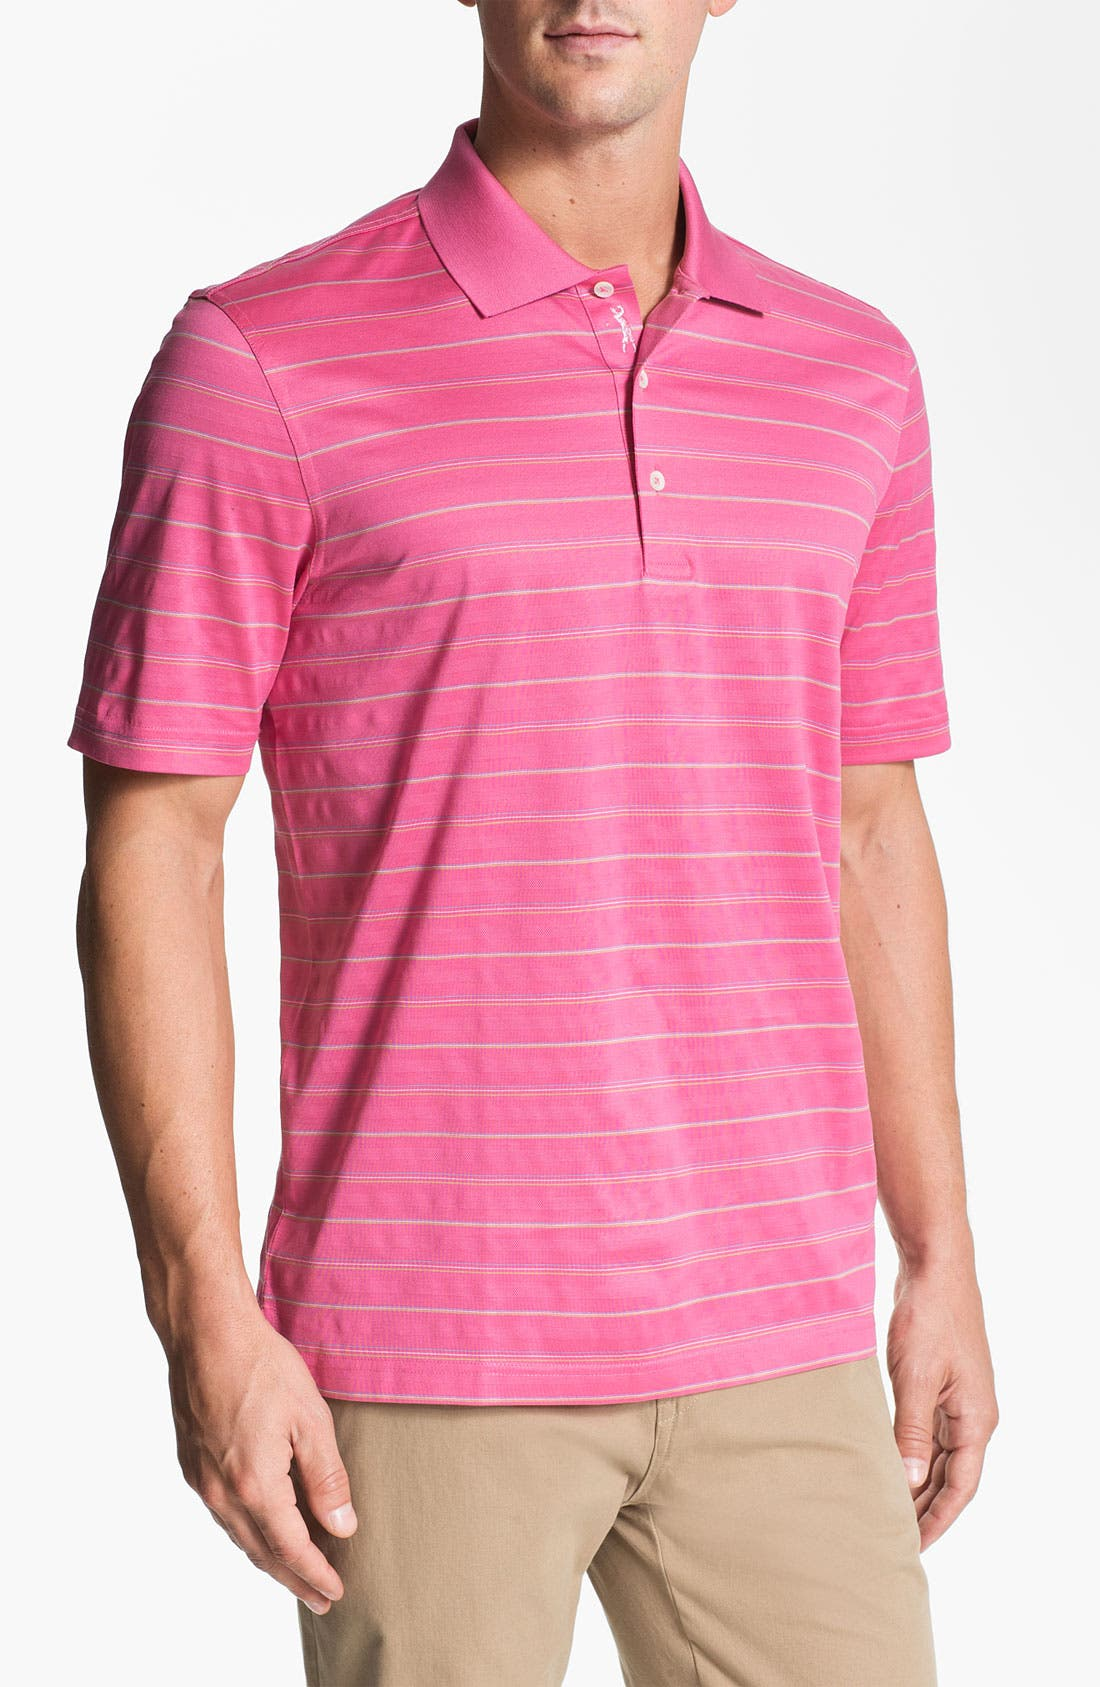 Alternate Image 1 Selected - Bobby Jones 'Textured Stripe' Golf Polo